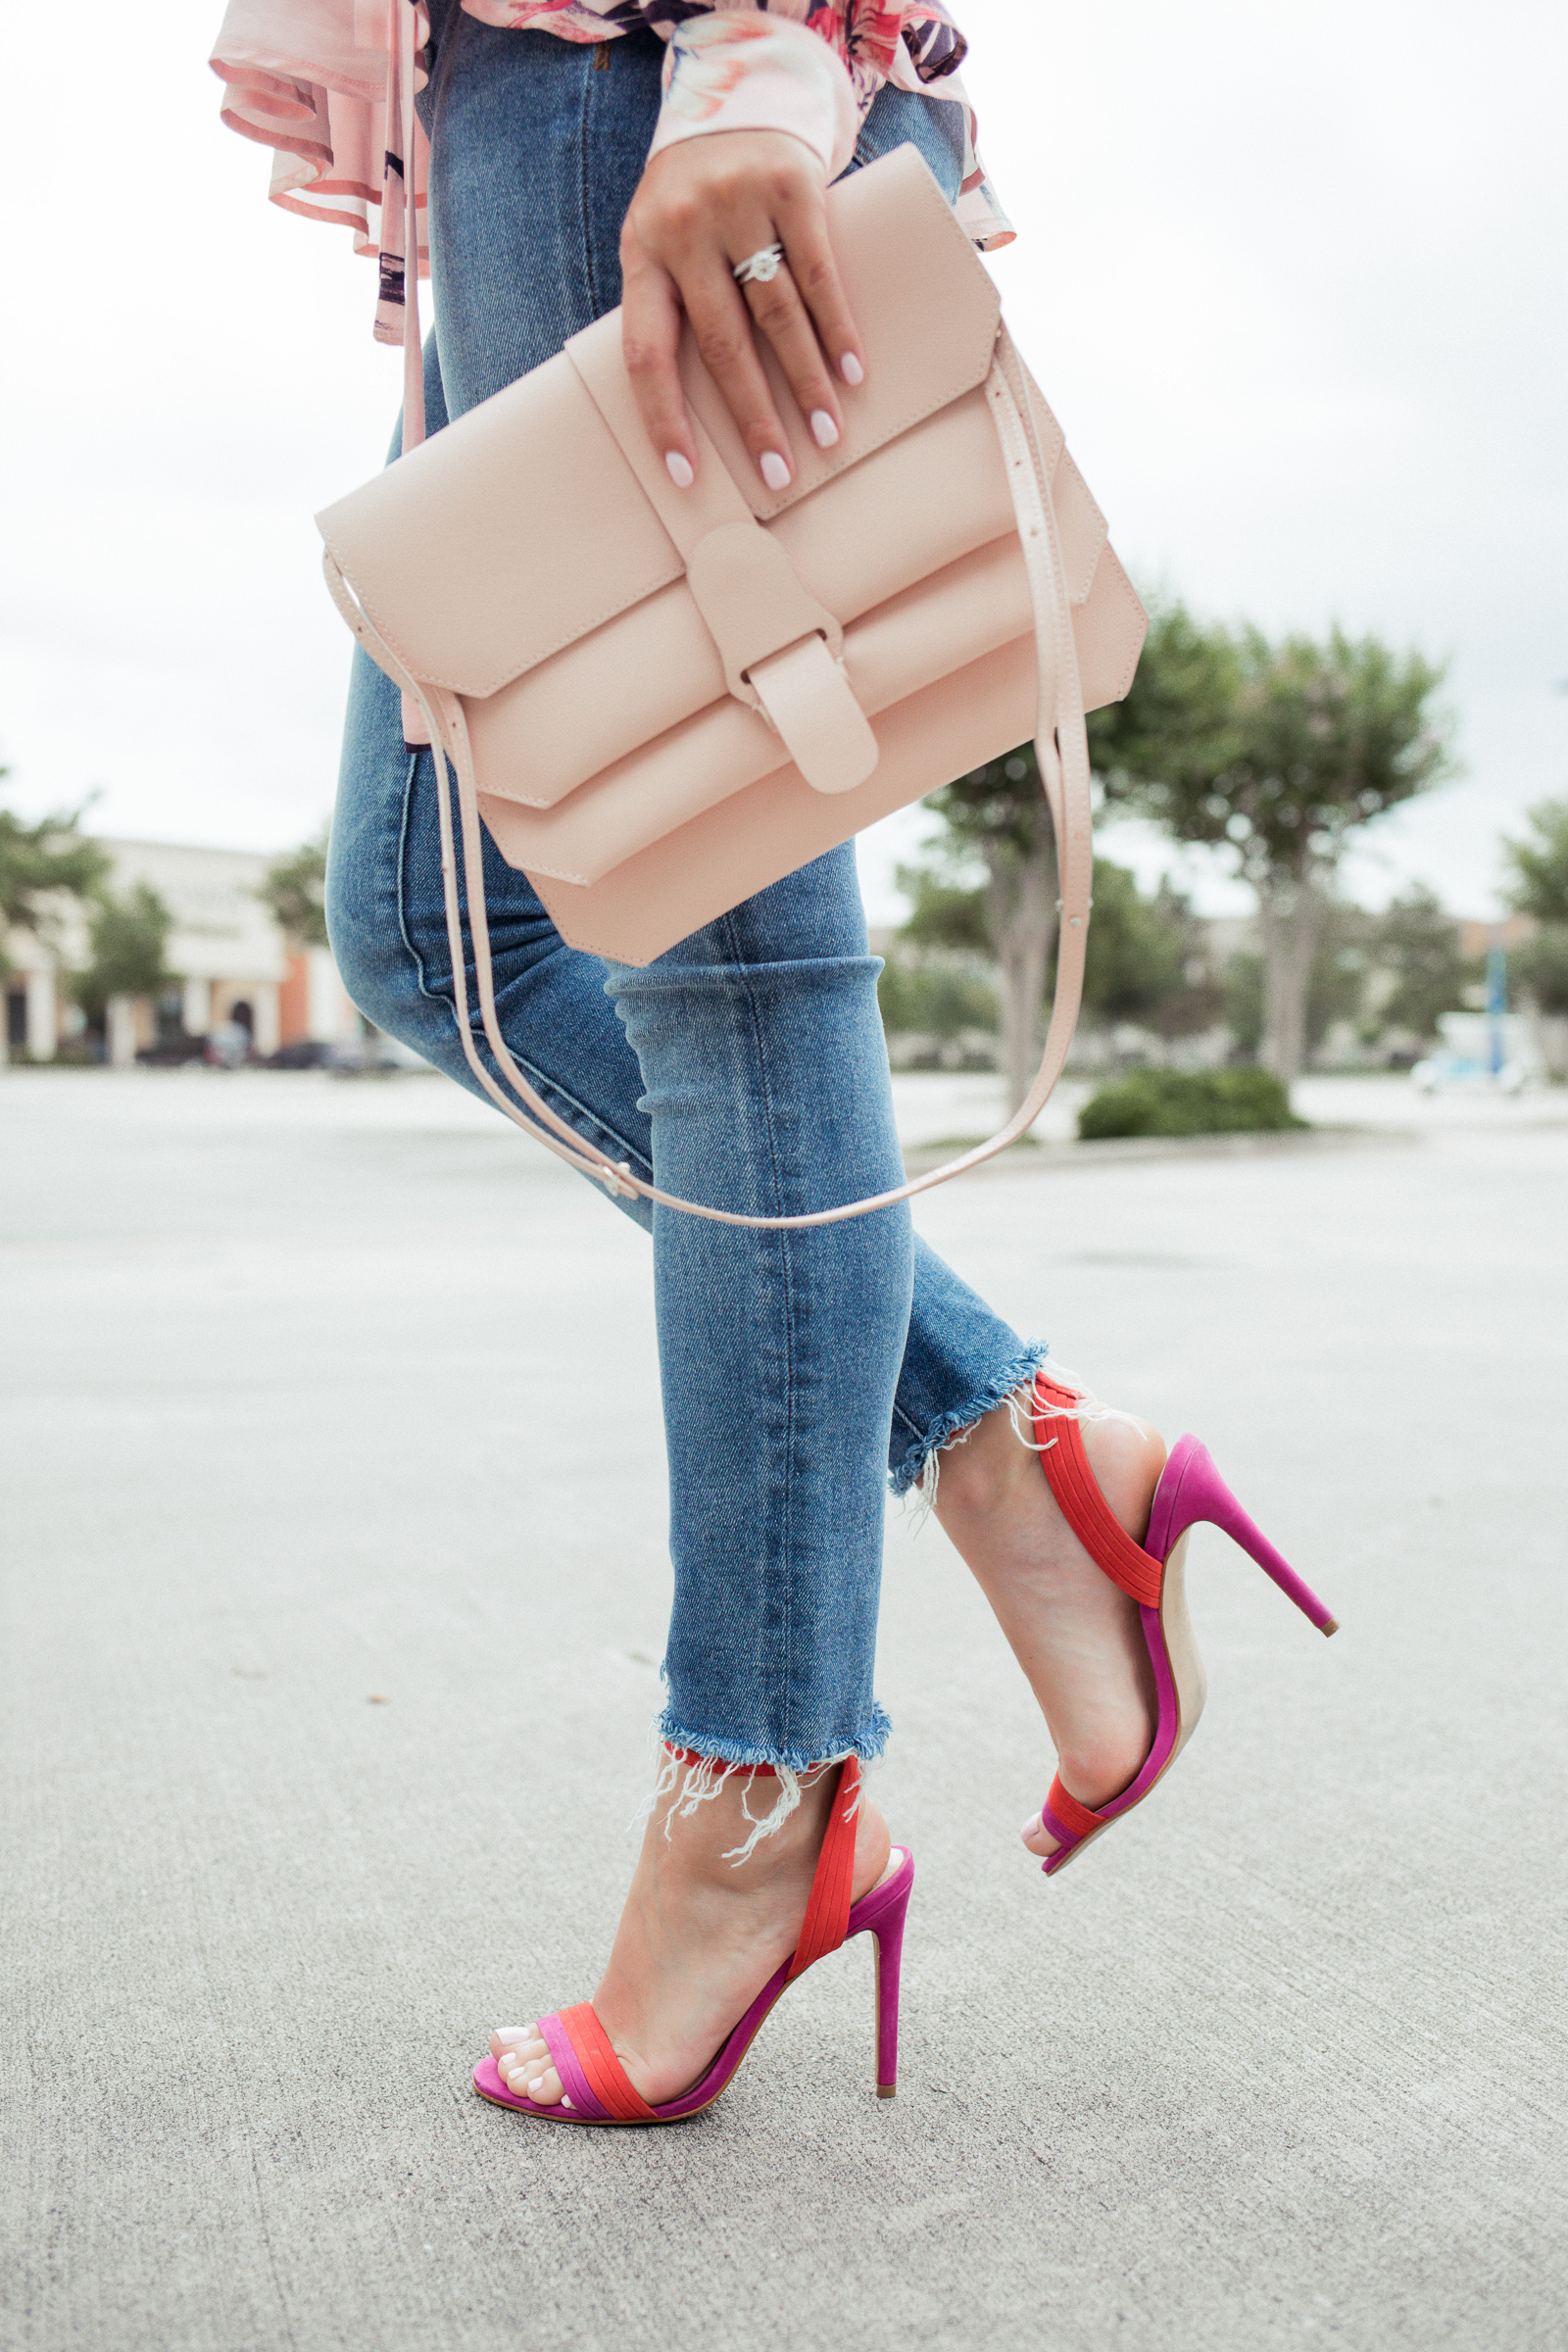 Houston fashion blogger Elly Brown wears bright Summer sandals from Aldo with a Senreve crossbody bag